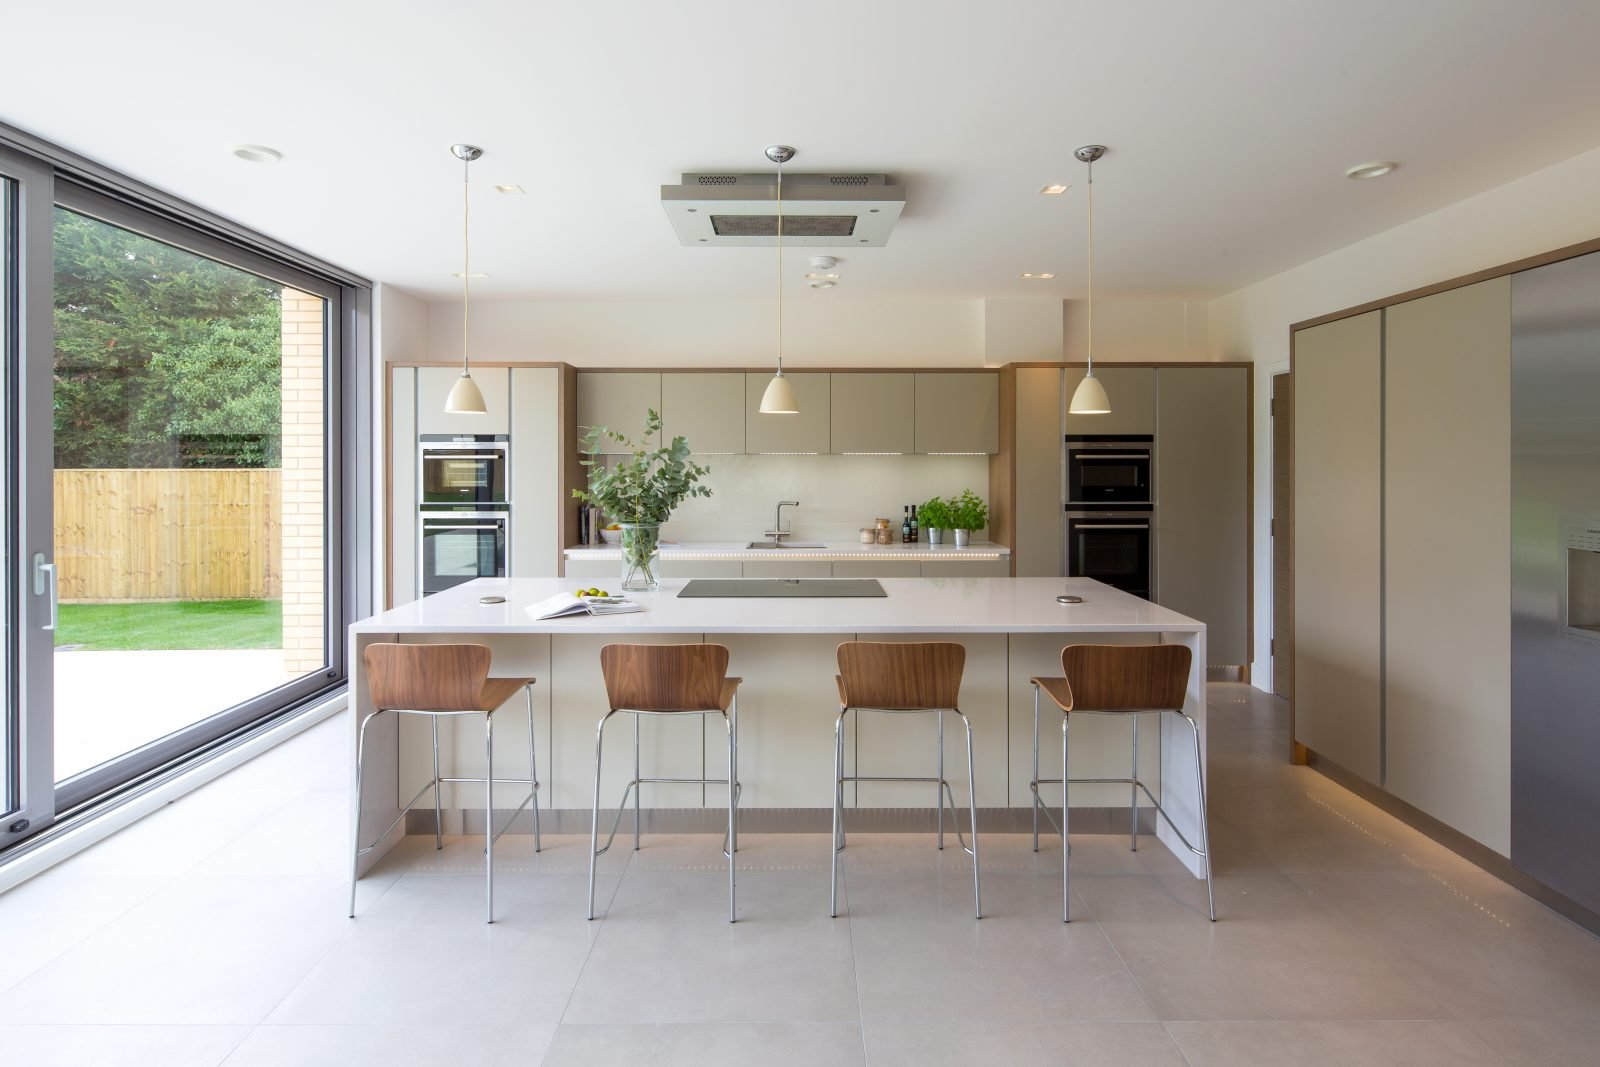 Benchmark Kitchens Oxford 39 S Leading Kitchen Design Company